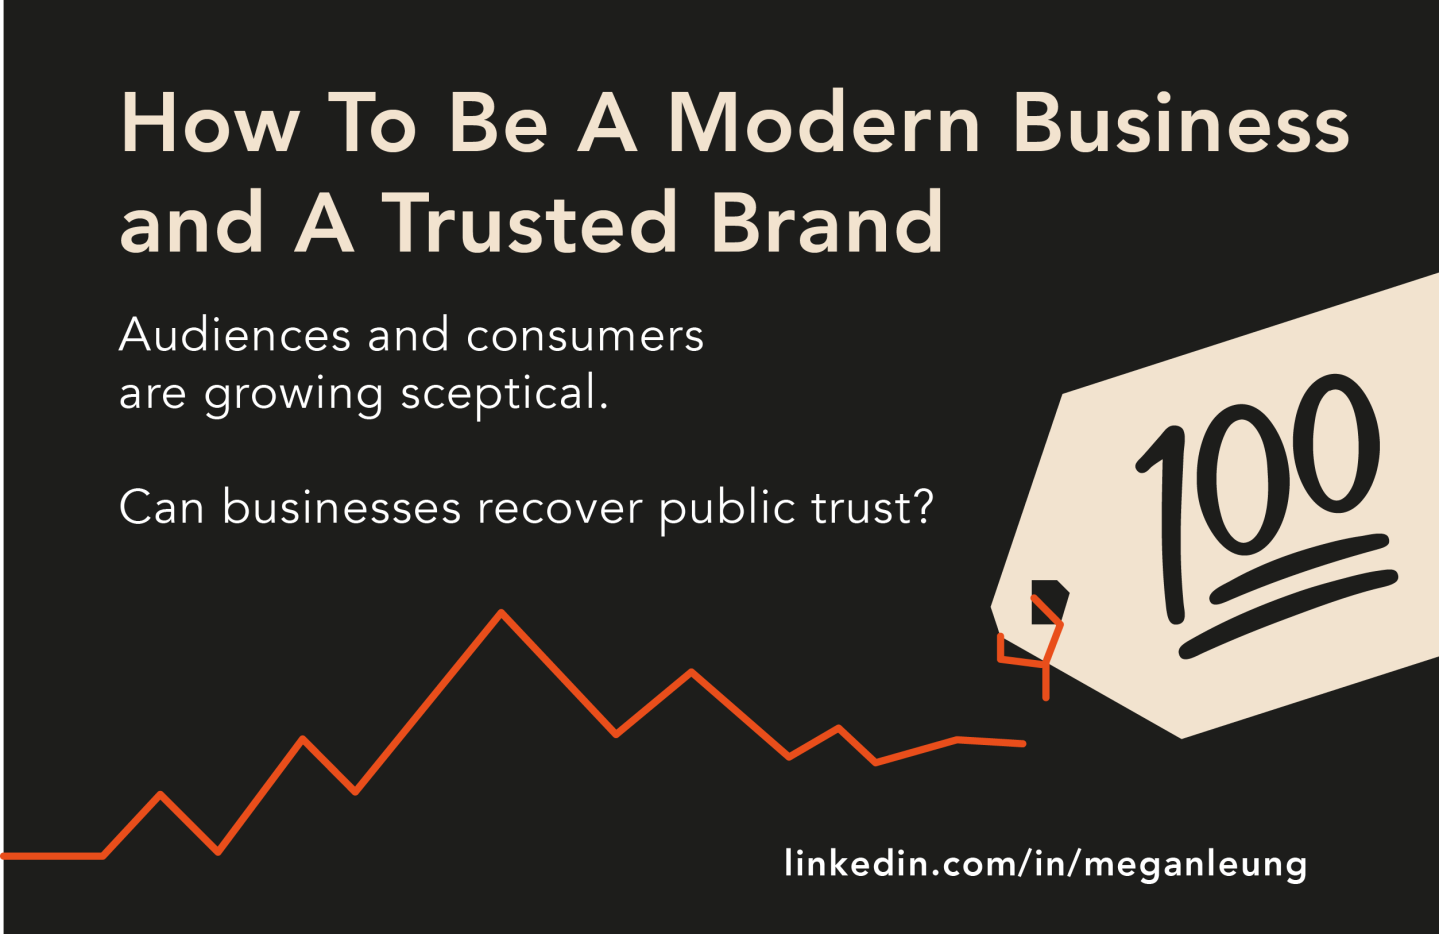 edelman-2017-how-to-recover-customer-trust